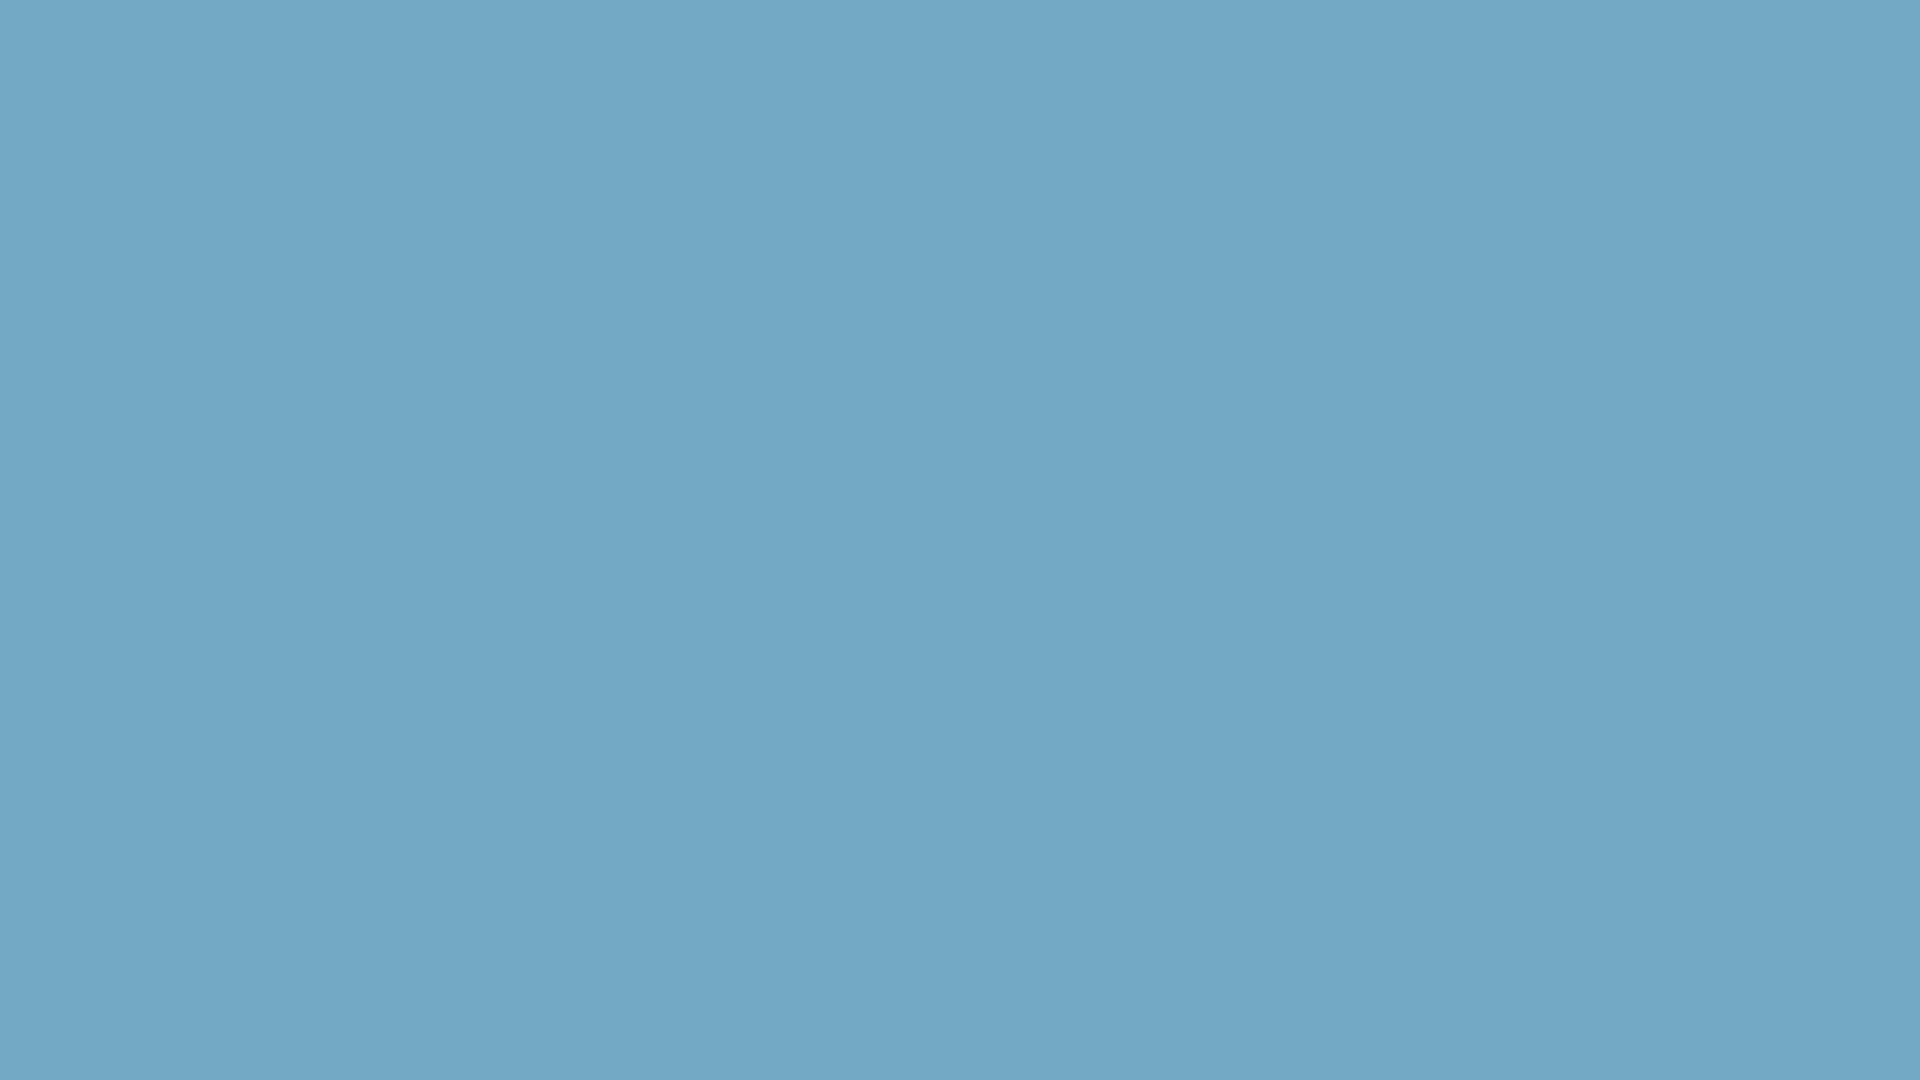 1920x1080 Moonstone Blue Solid Color Background